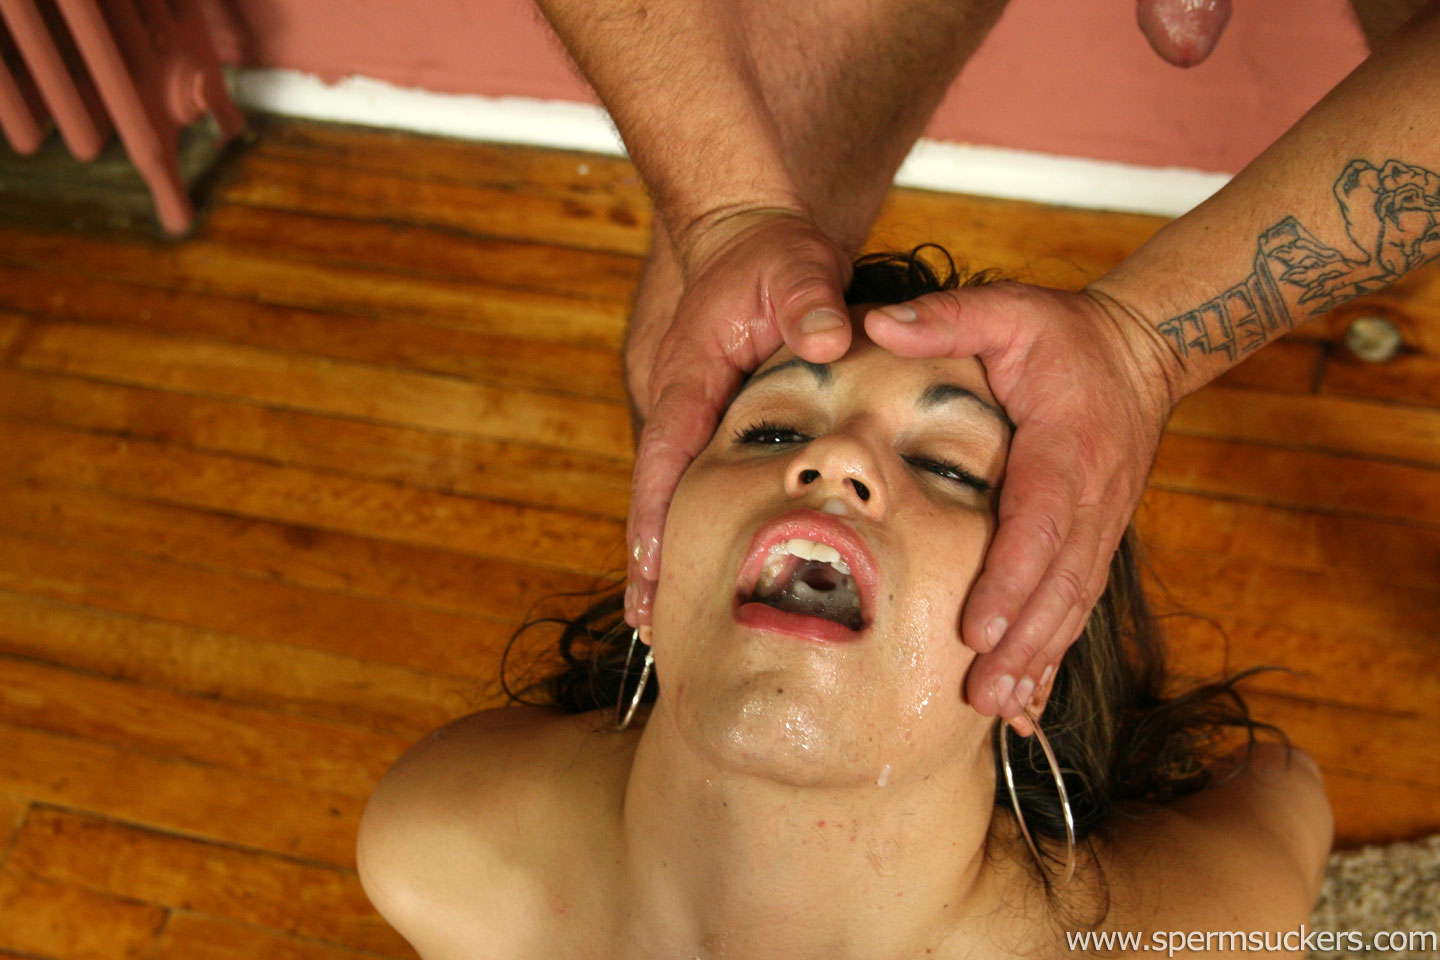 Among multiple men cum on her face and import